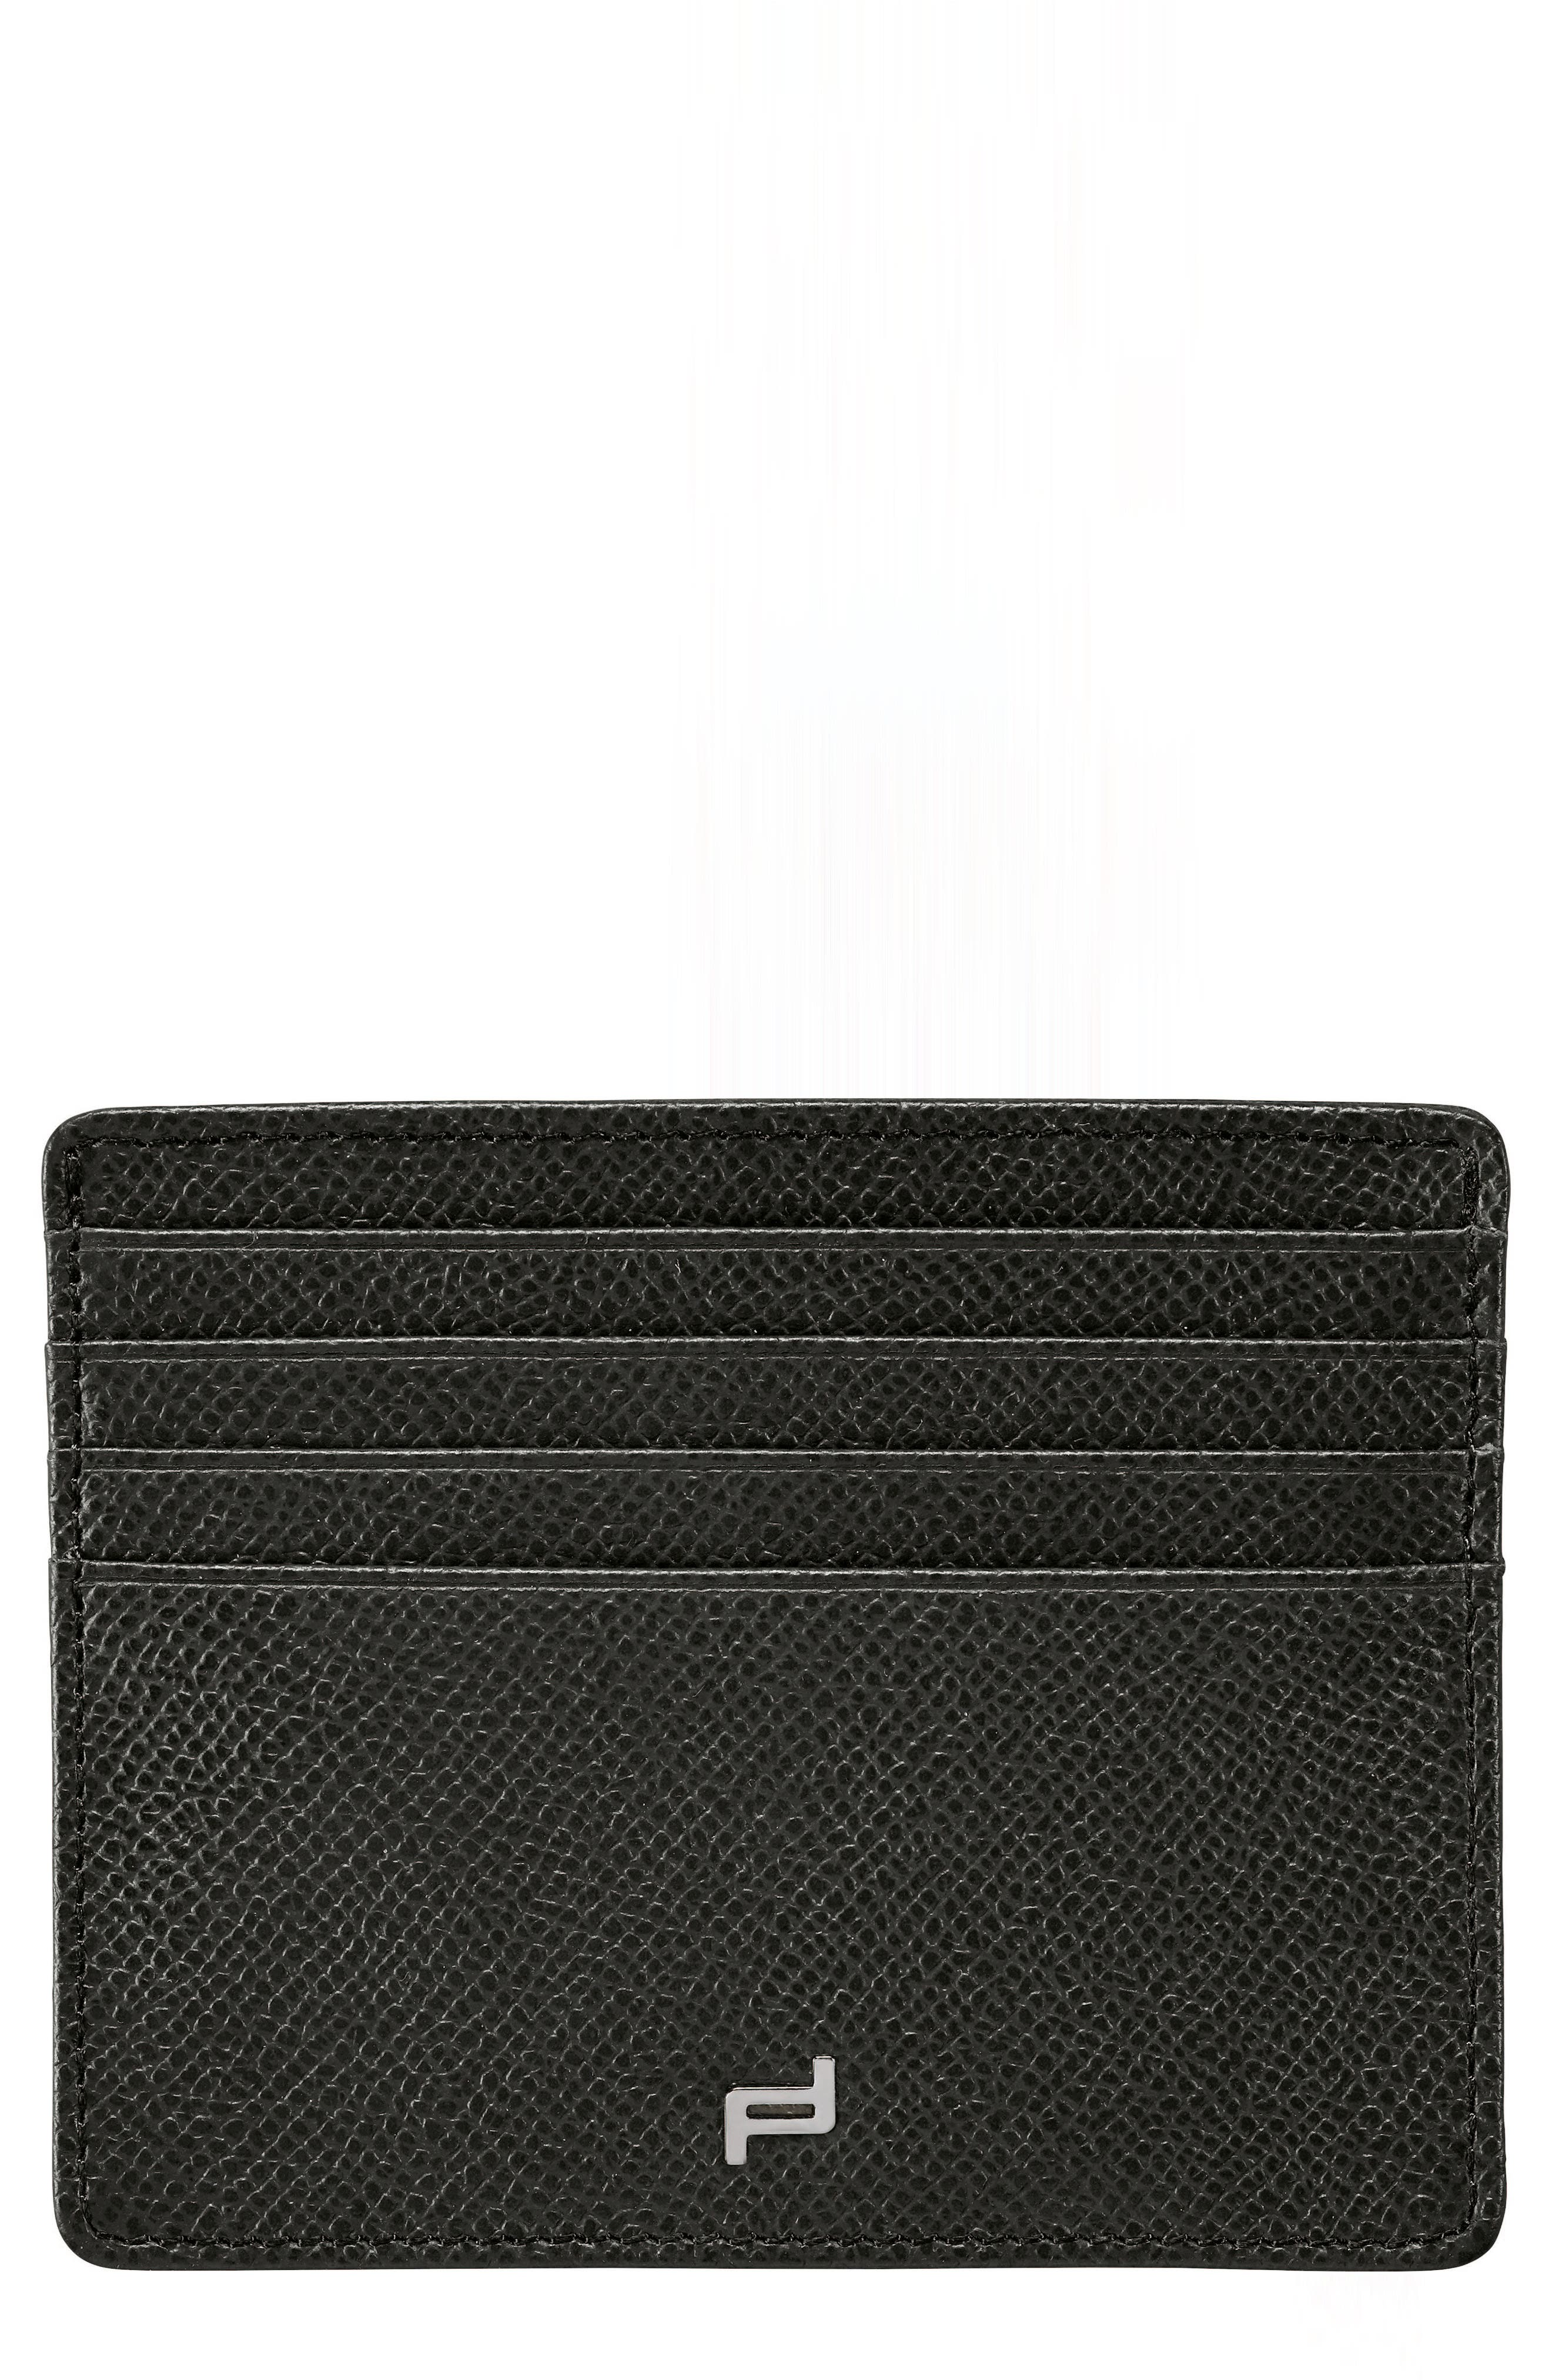 French Classic 3.0 Leather Card Case,                             Main thumbnail 1, color,                             Black